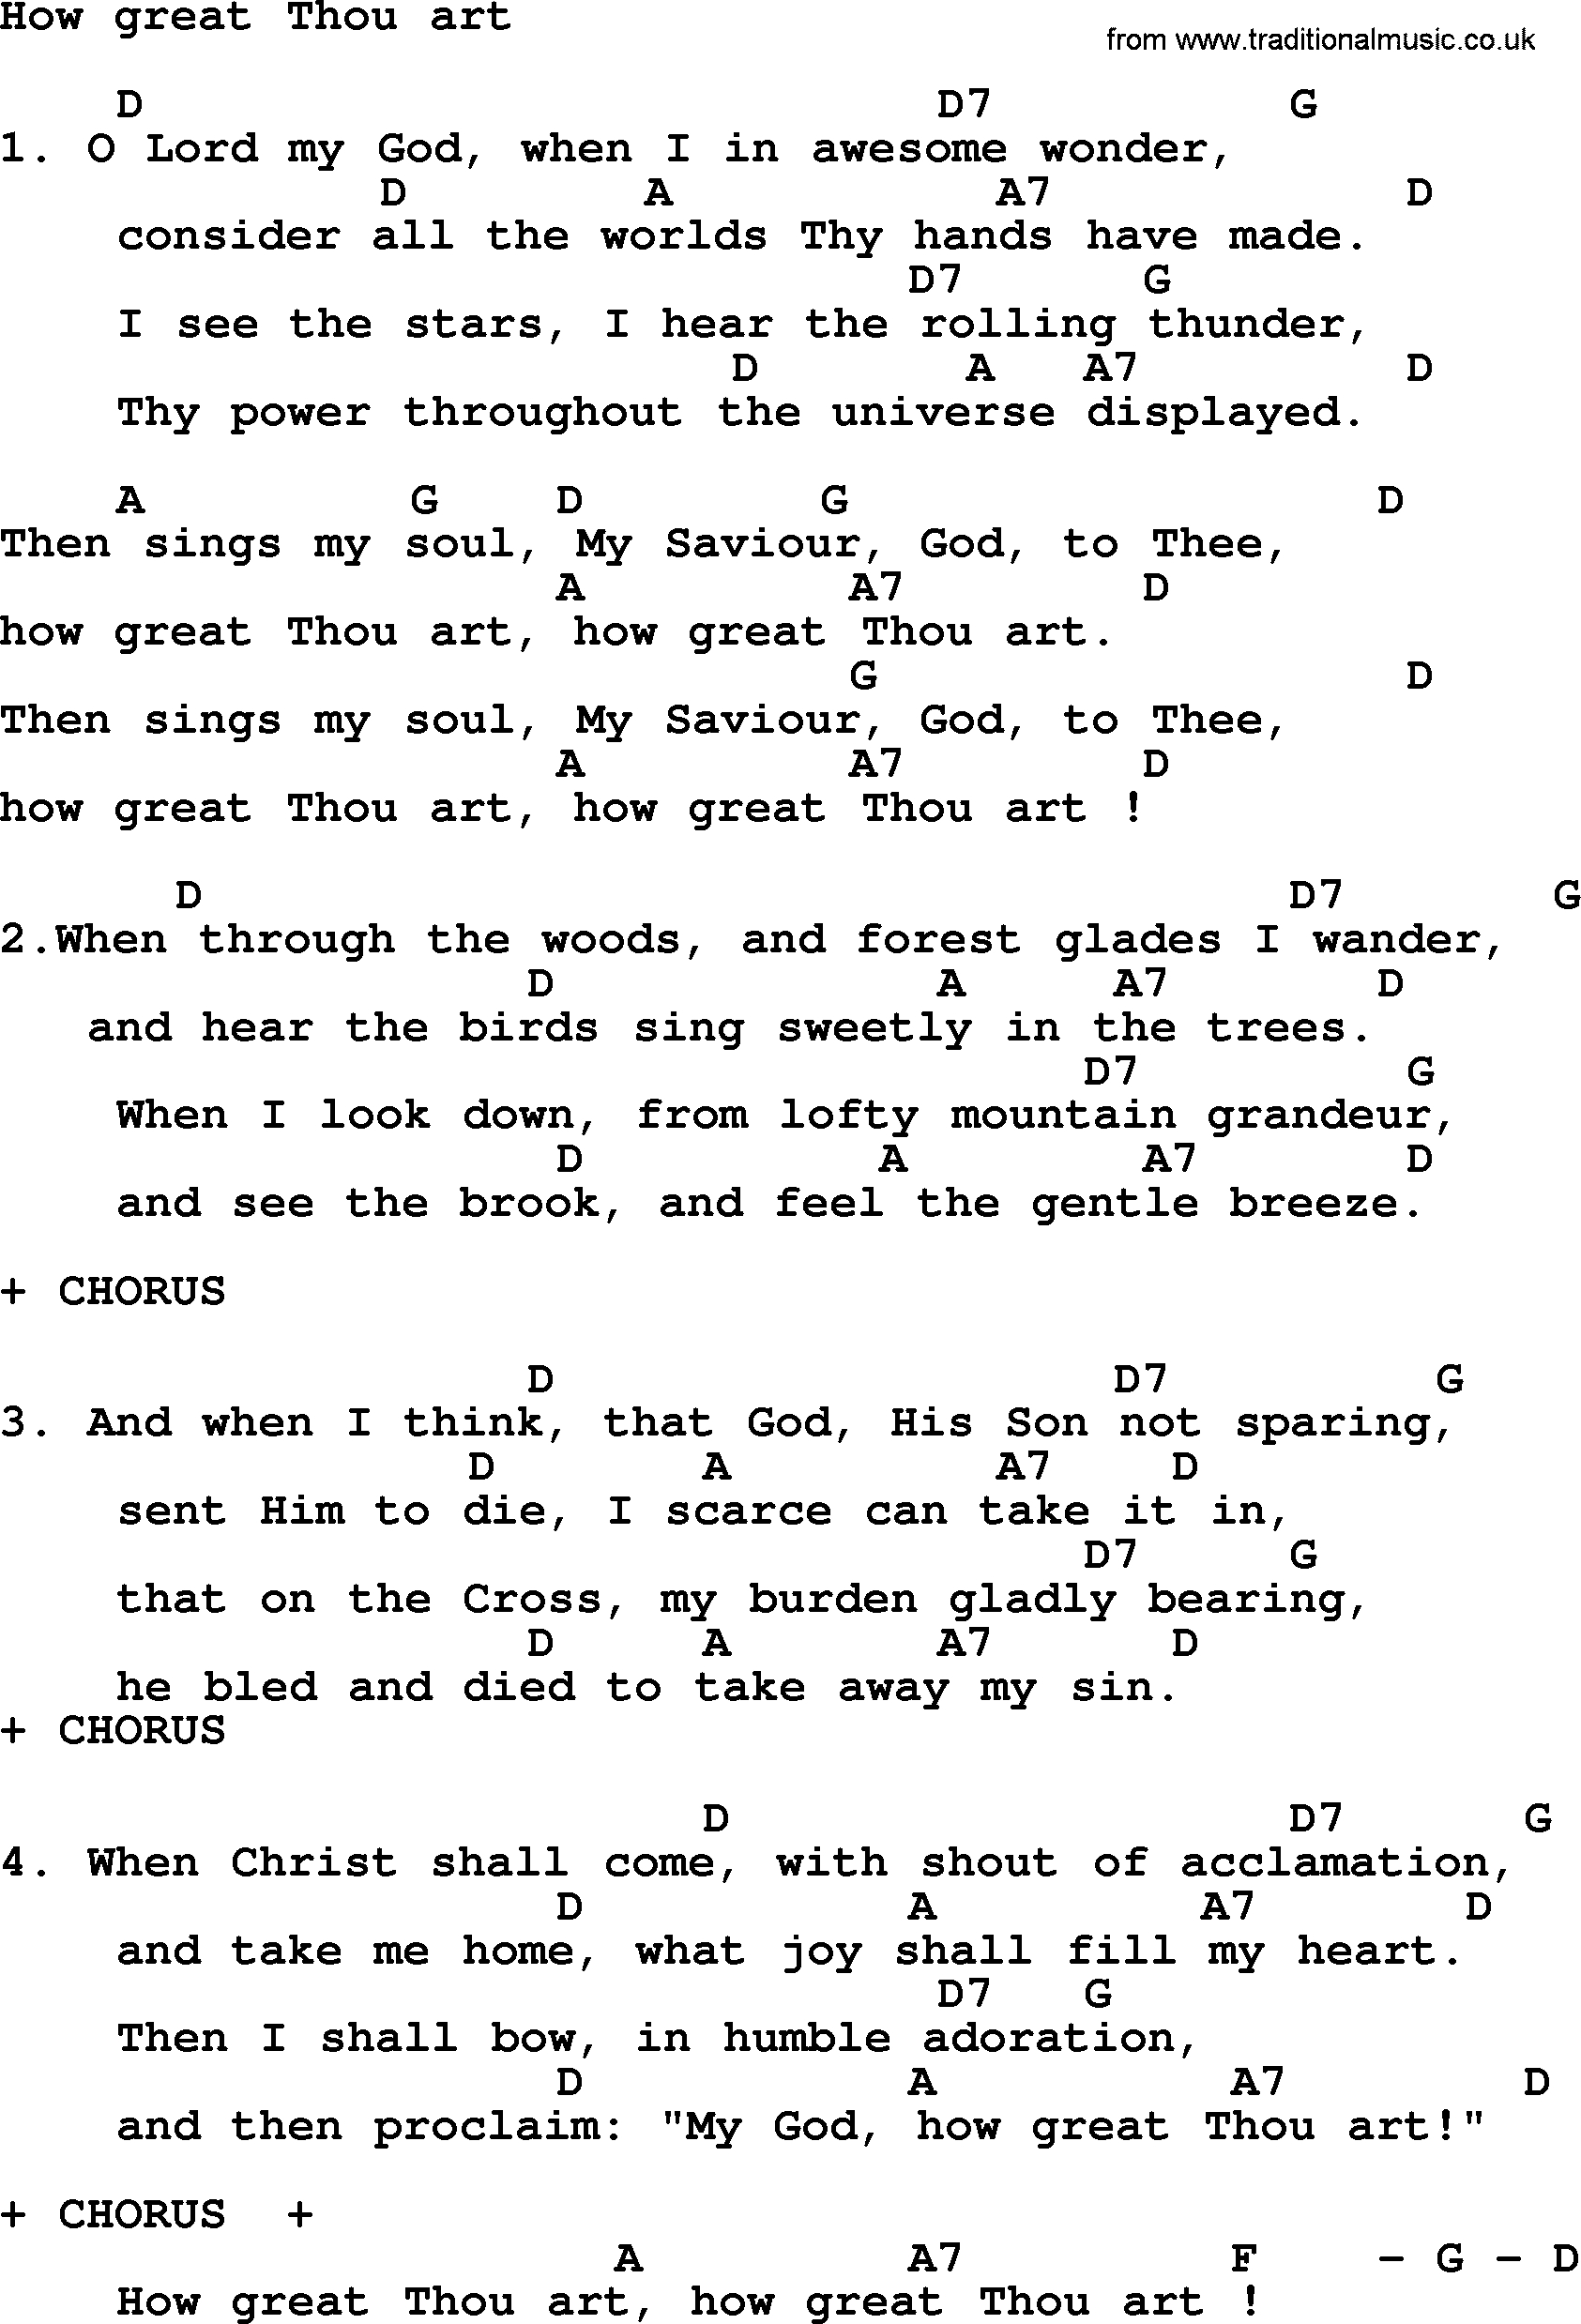 How Great Thou Art Chords Loretta Lynn Song How Great Thou Art Lyrics And Chords